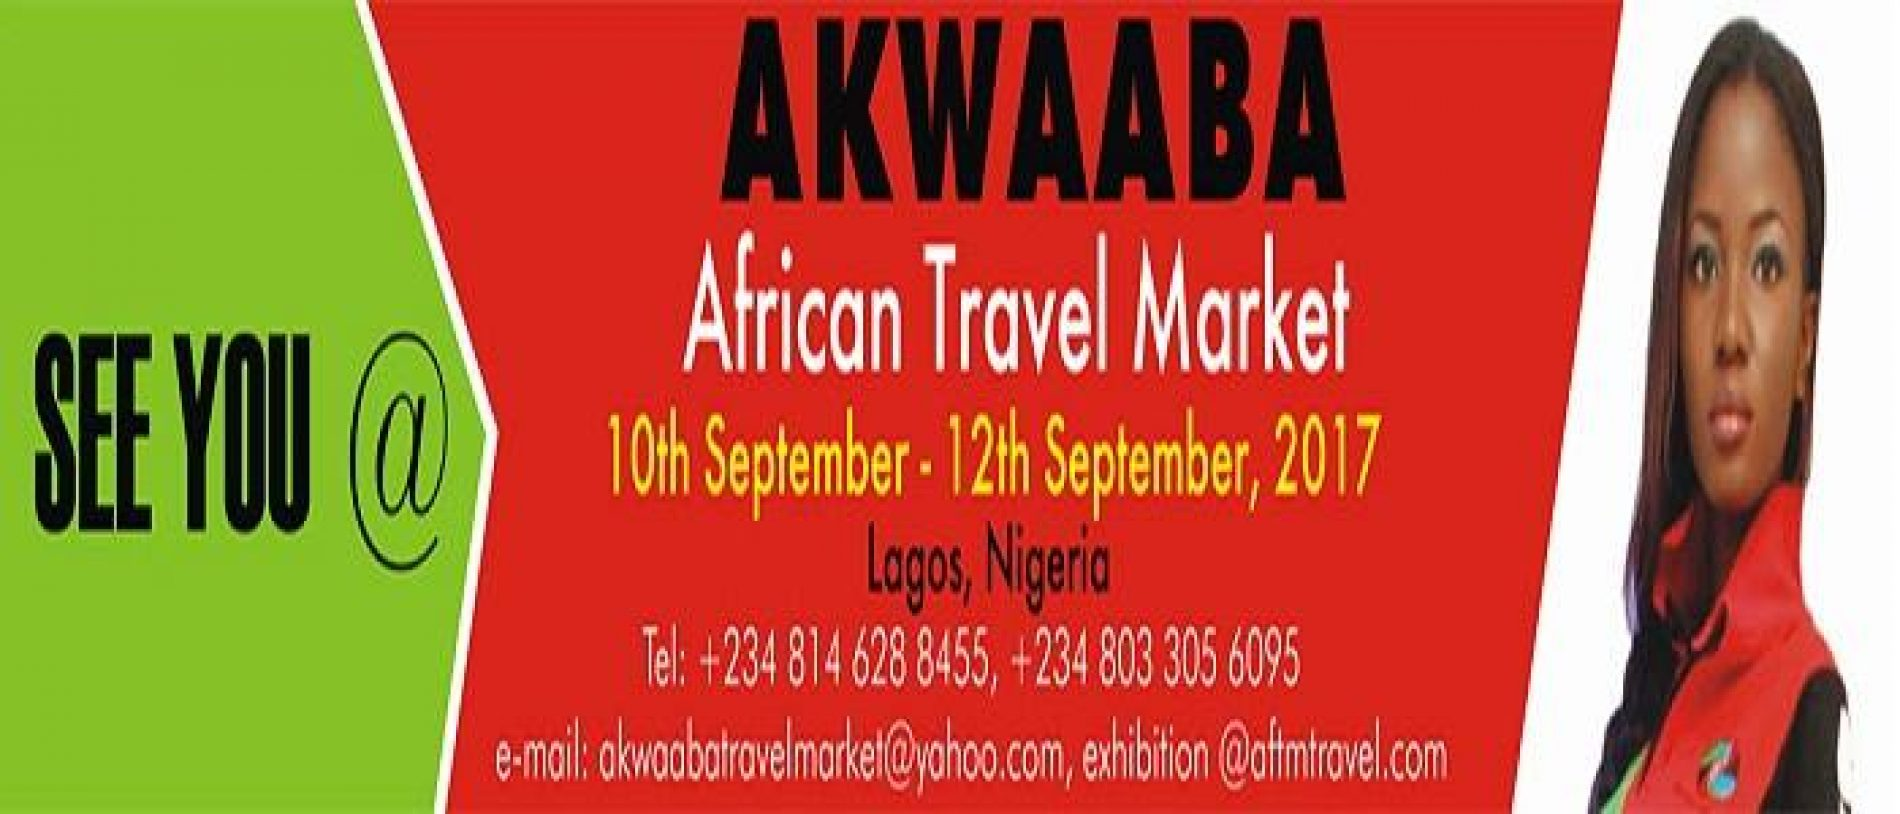 Akwaaba Travel Market 2017: Foremost aviation expert, Gbenga Olowo joins speakers